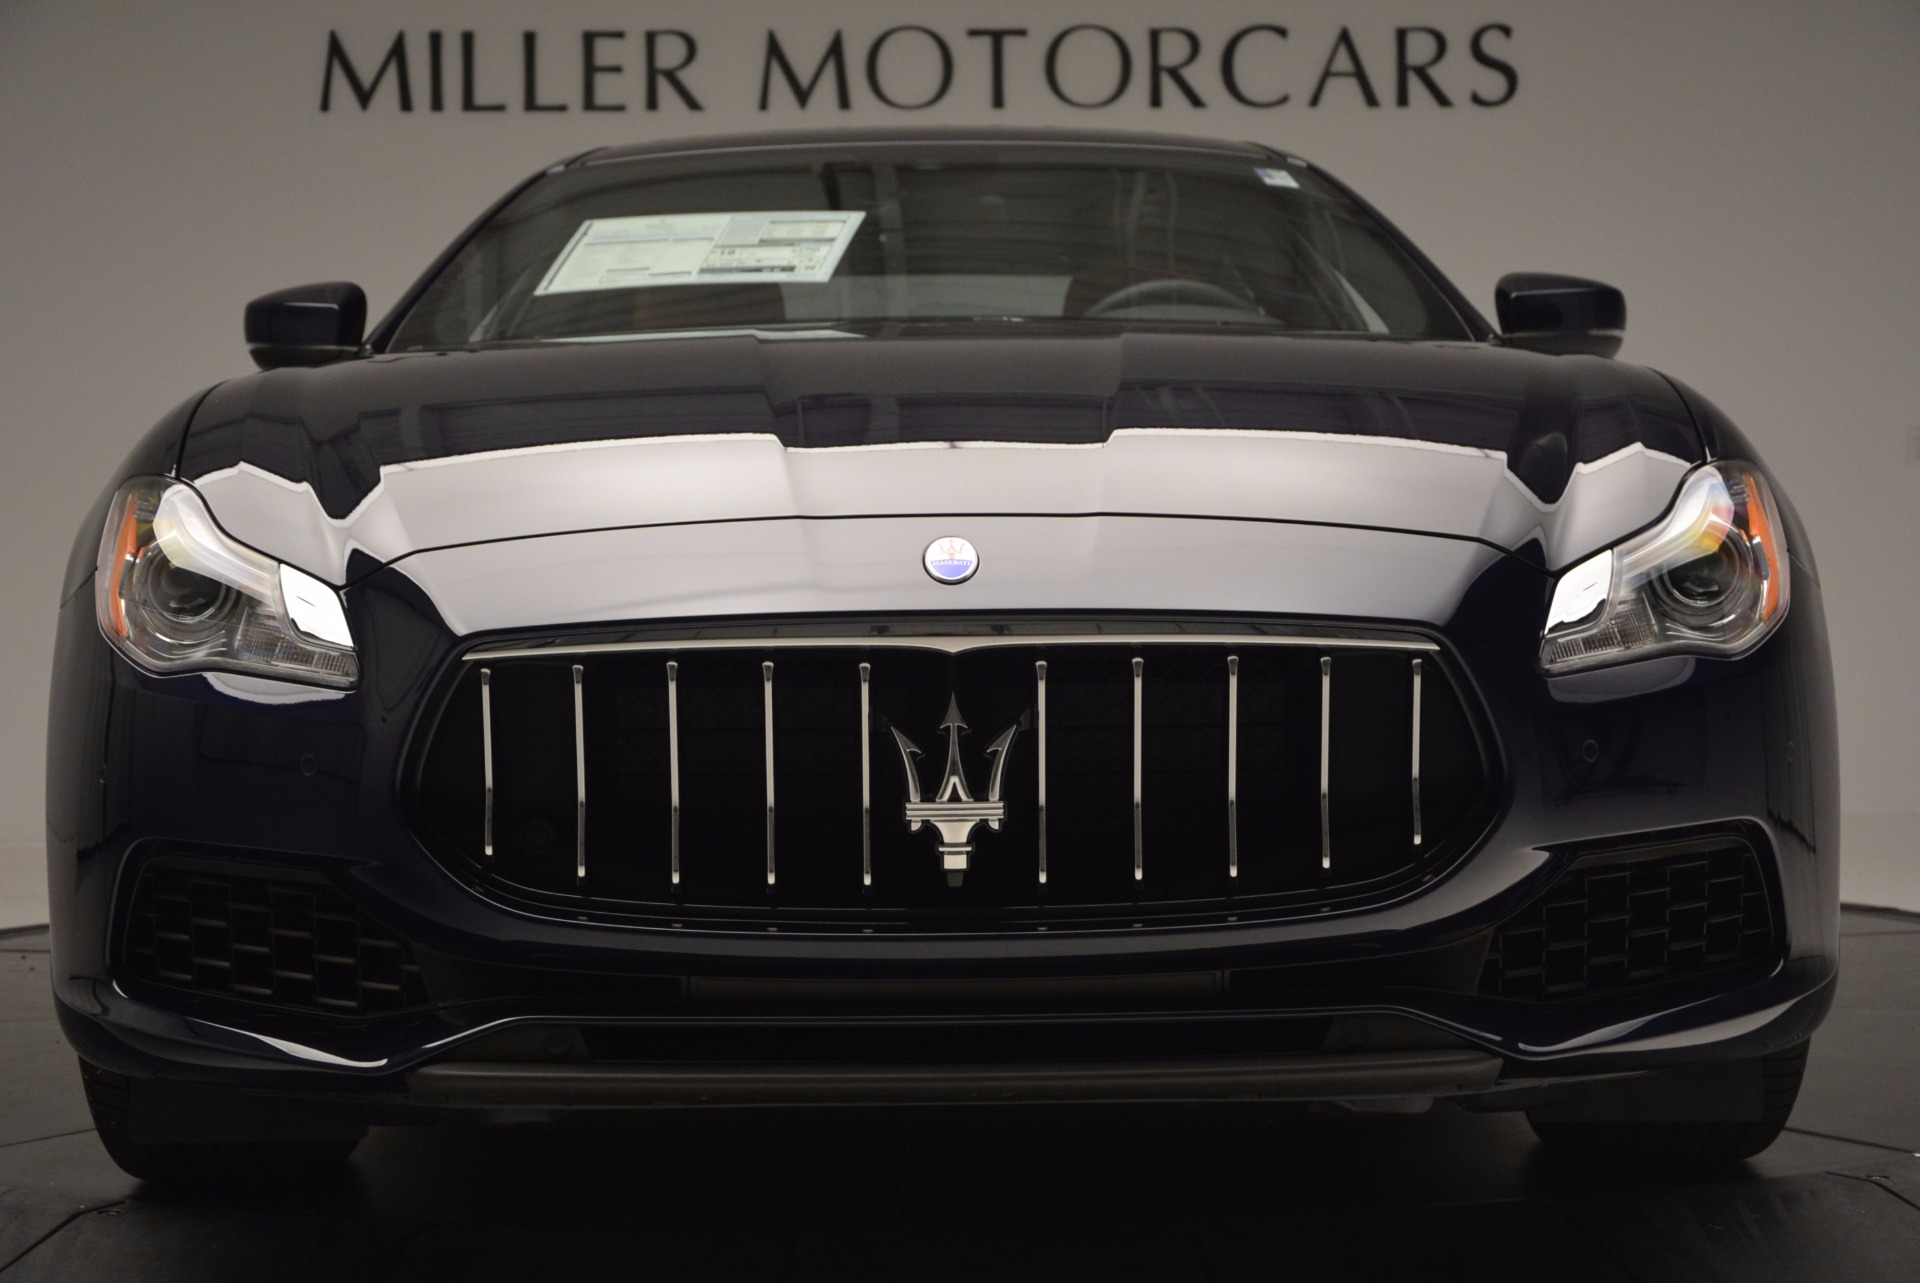 New 2017 Maserati Quattroporte S Q4 GranLusso For Sale In Greenwich, CT 716_p27